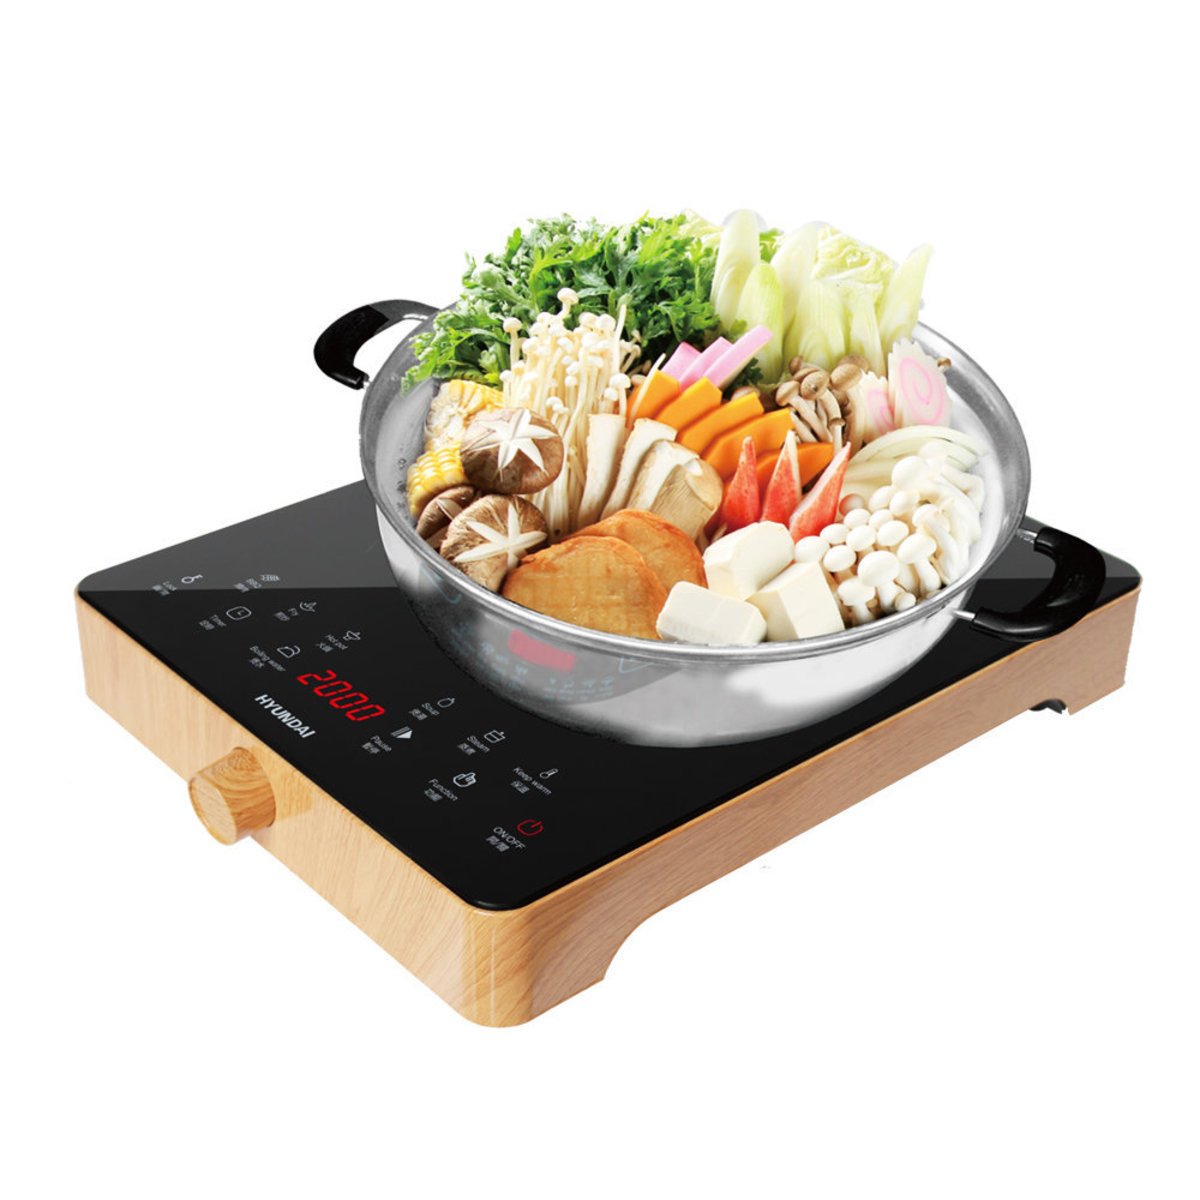 2000W Induction Cooker - HY-G16